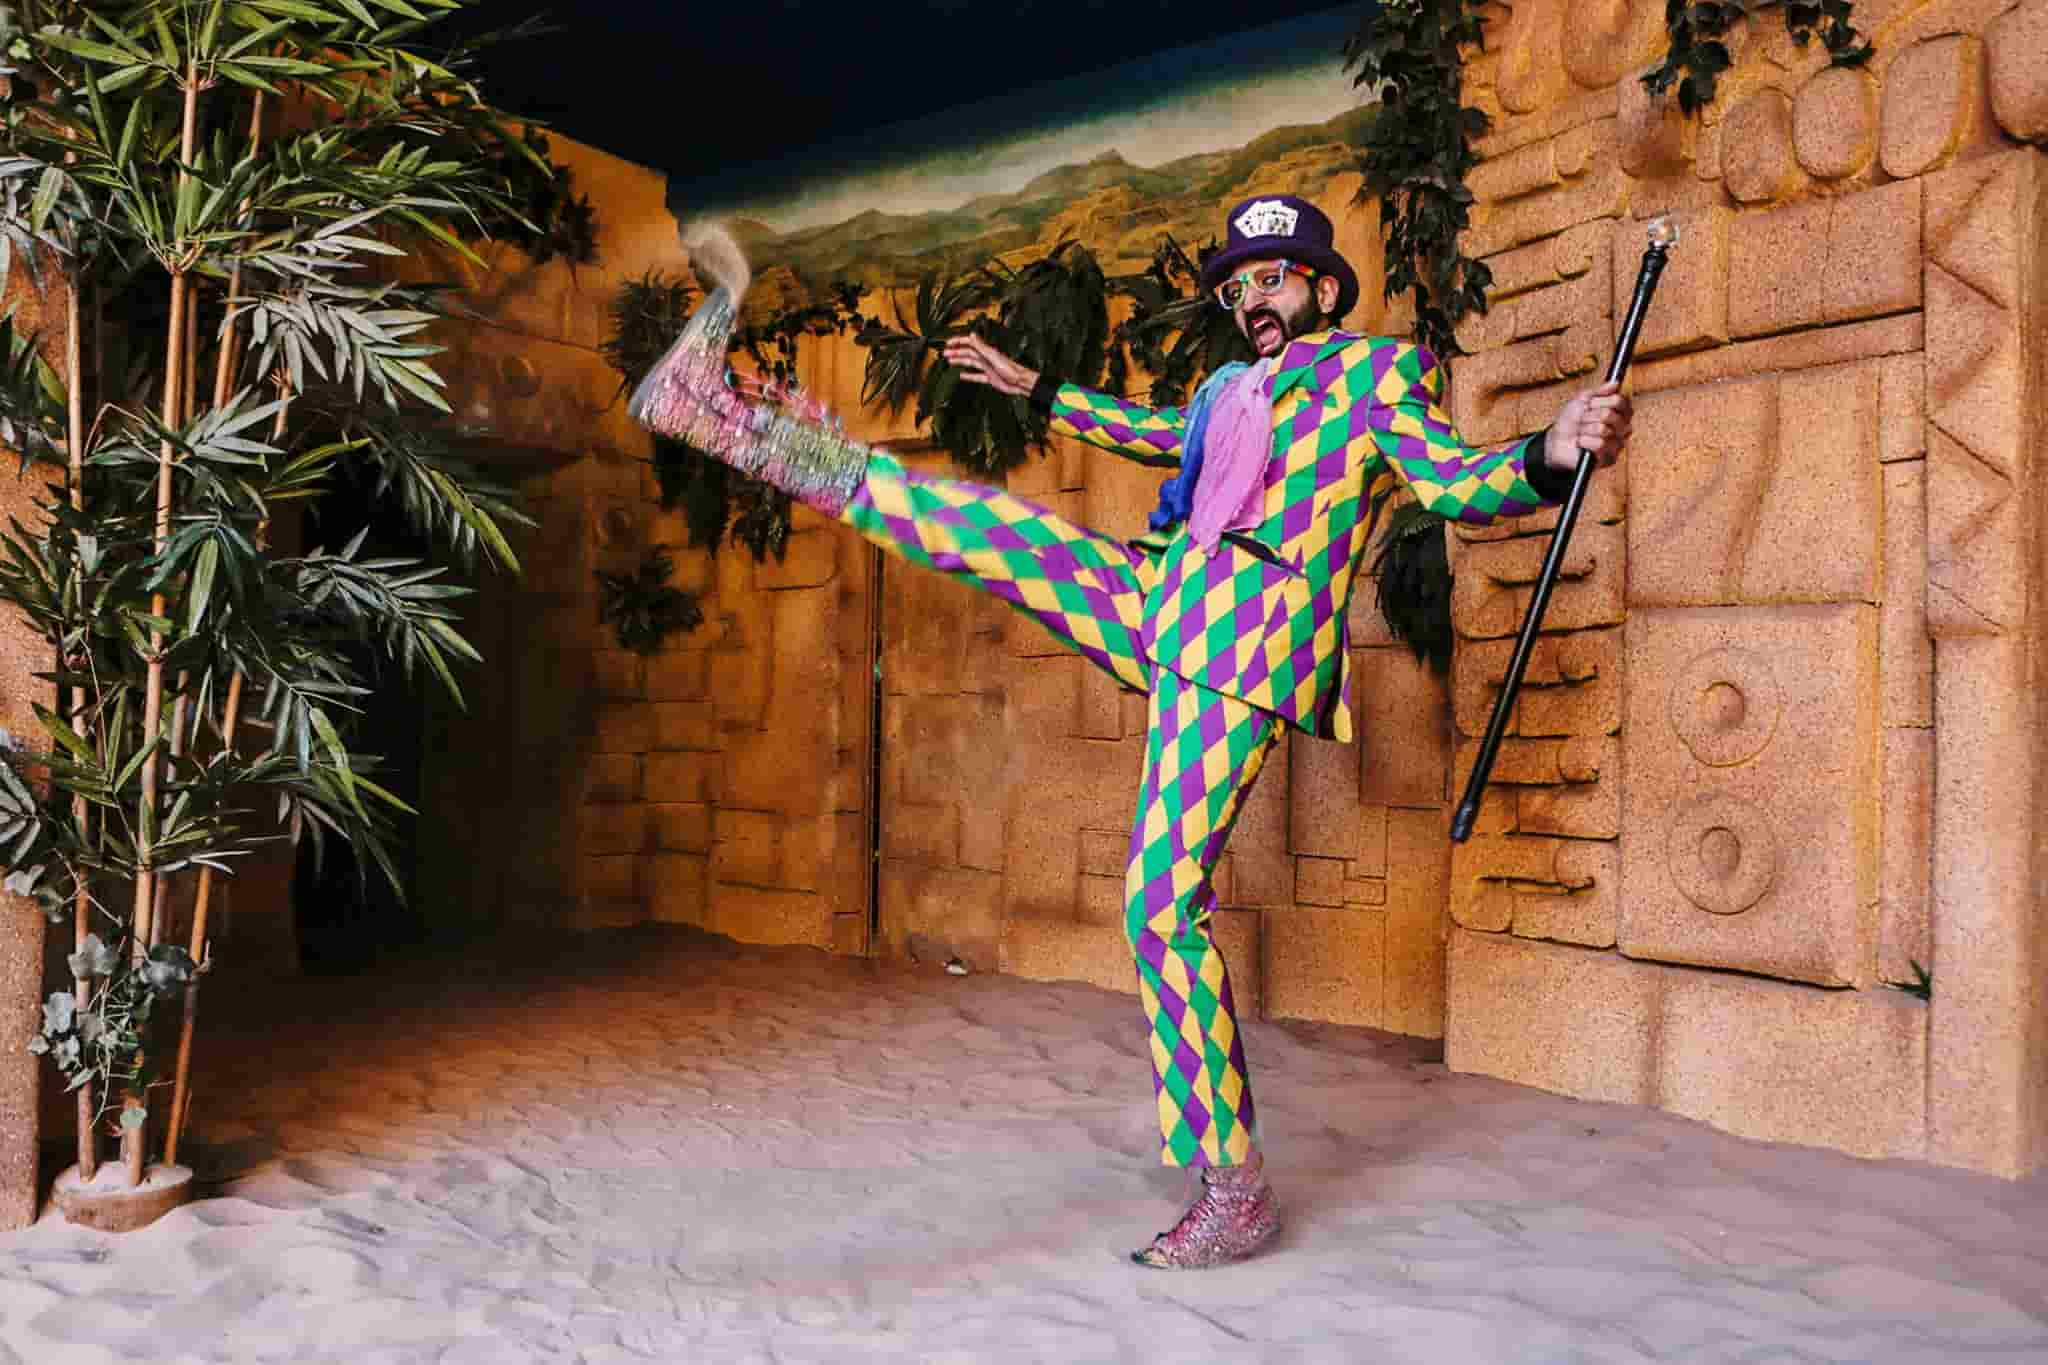 A maze master in a colourful suit posing dramatically with his leg up in the air.